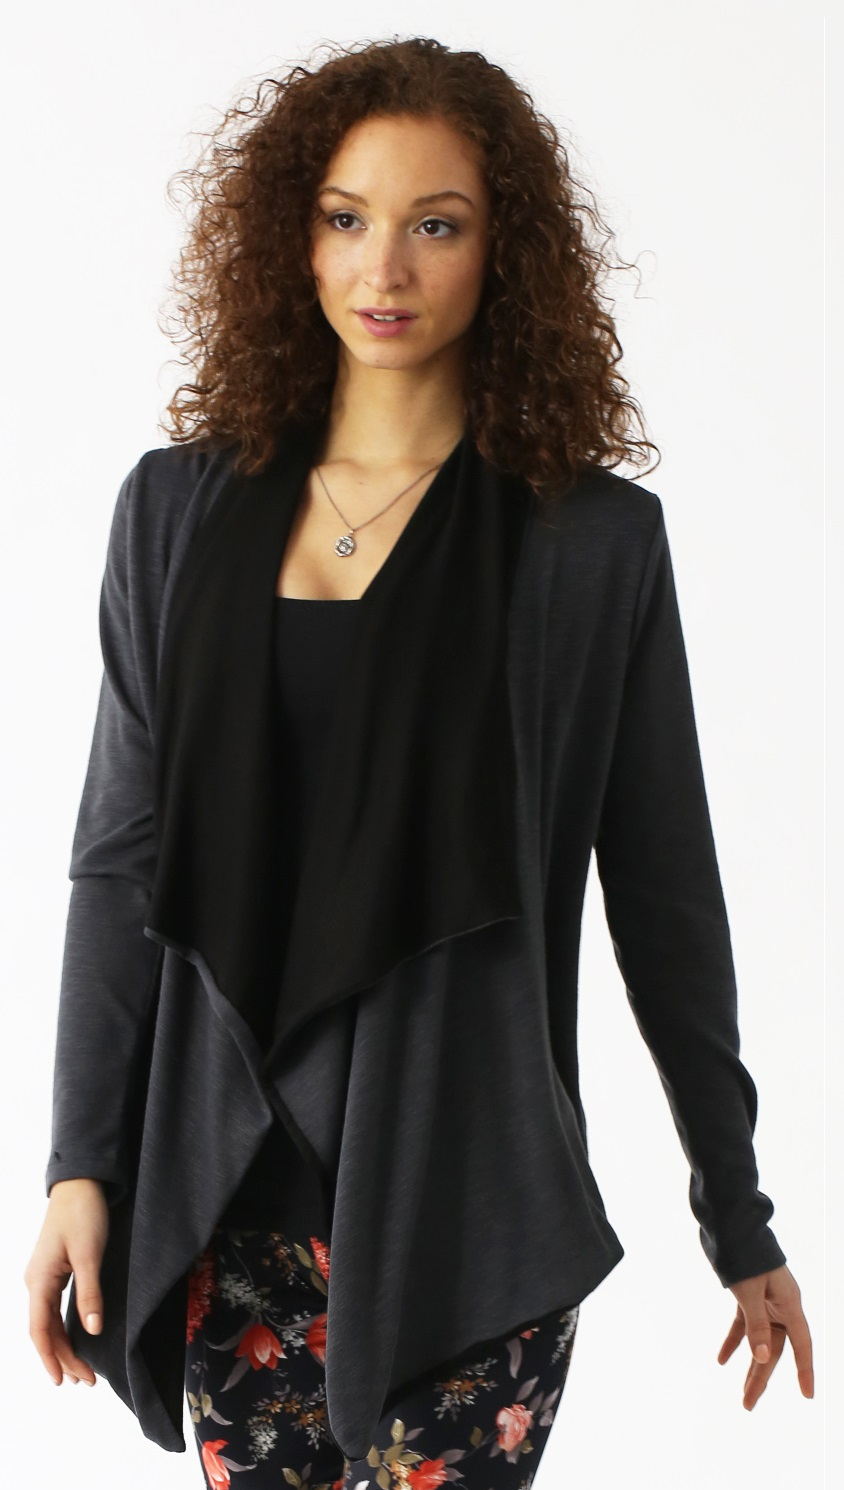 majamas-stola-nursing-maternity-cover-up-charcoal-close.jpg